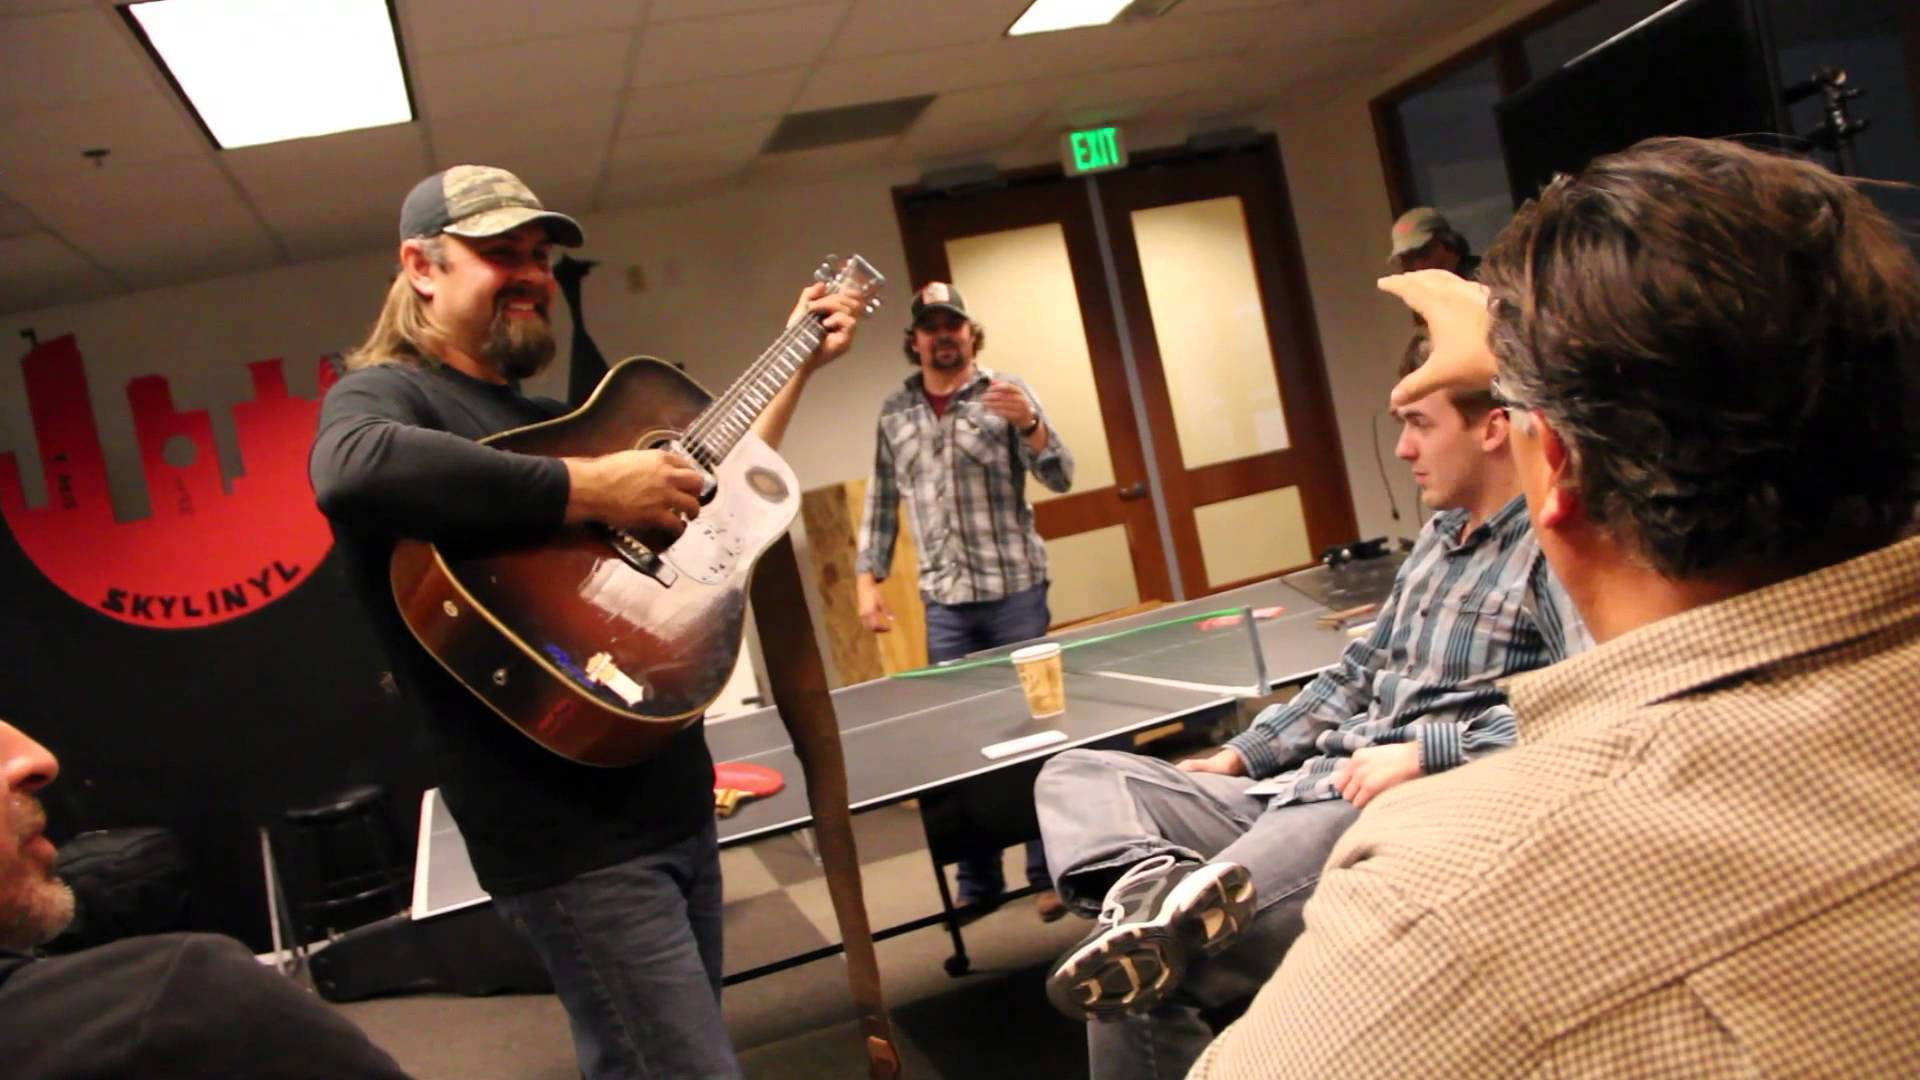 Davisson Brothers Band - Video Gallery - 019 - 2014